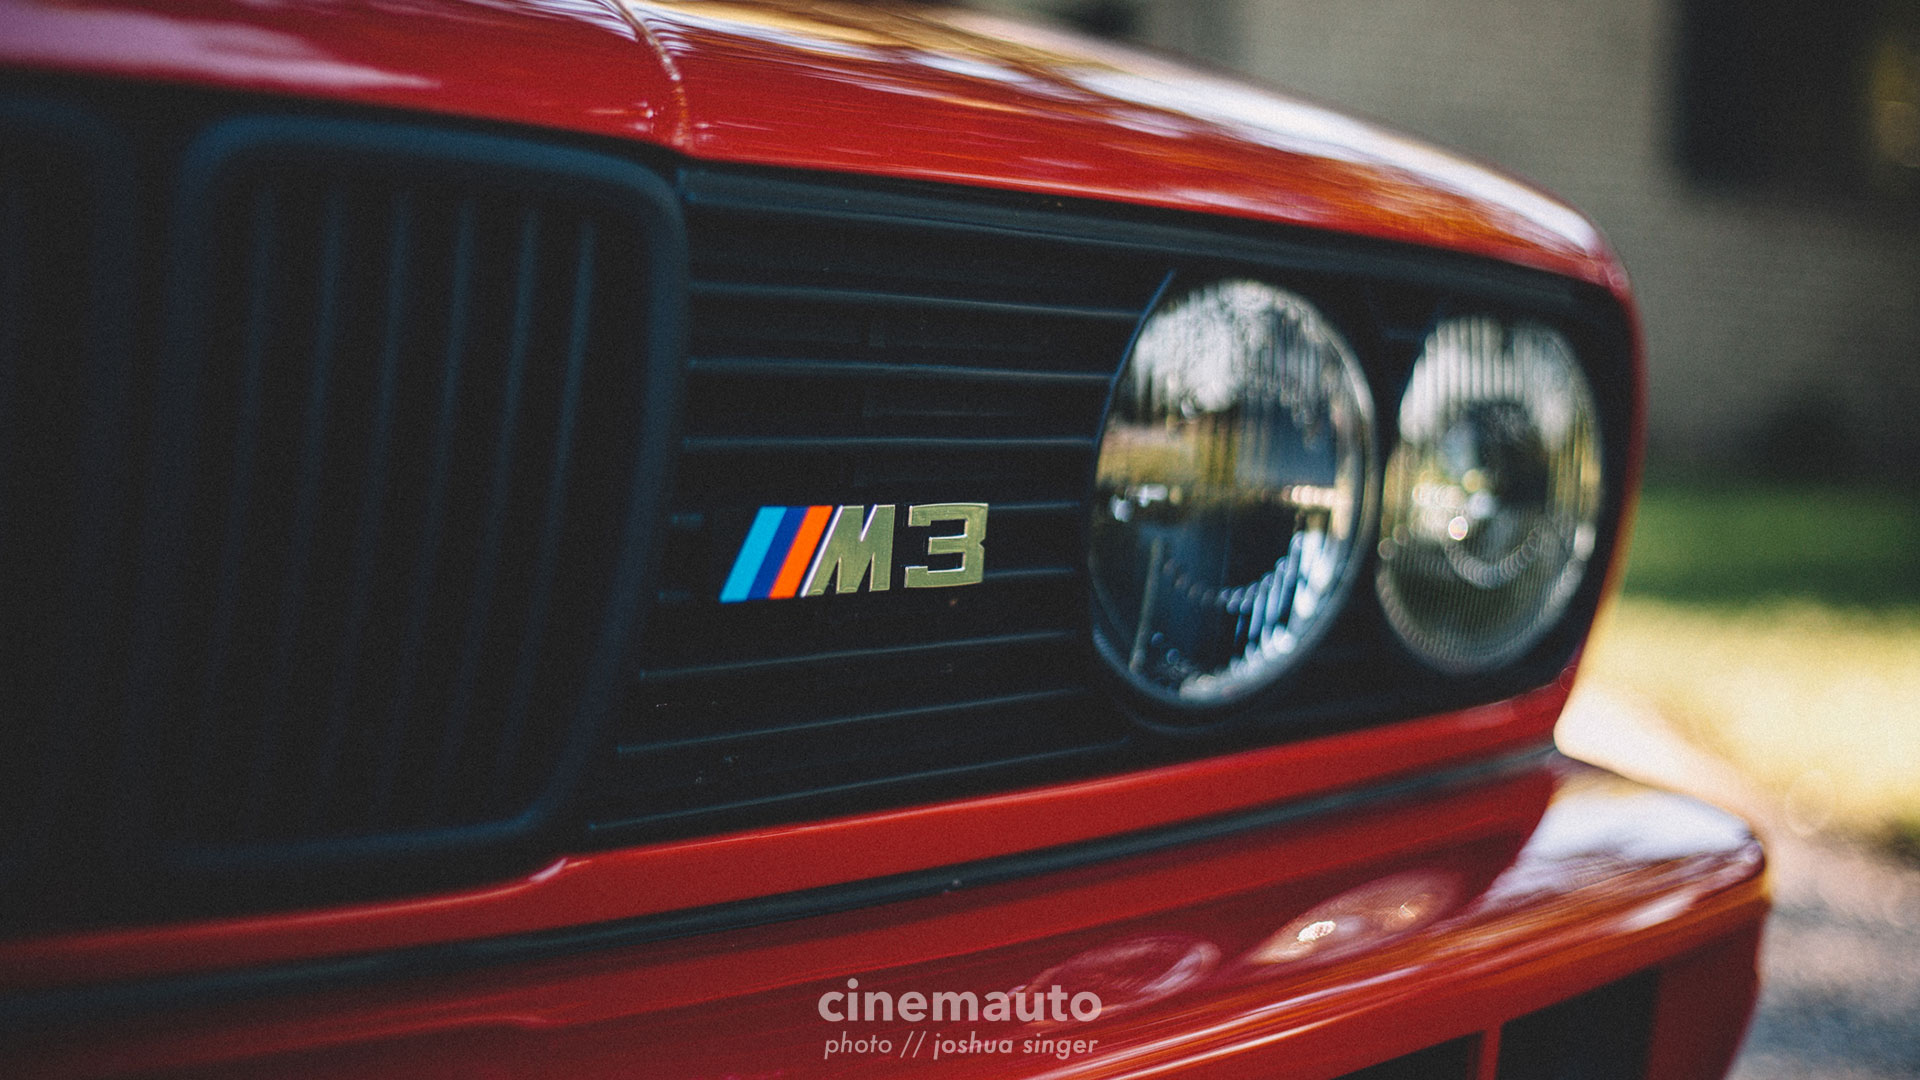 cinemauto-wichita-automotive-videography-midwest-car-cinematography-kk4.jpg